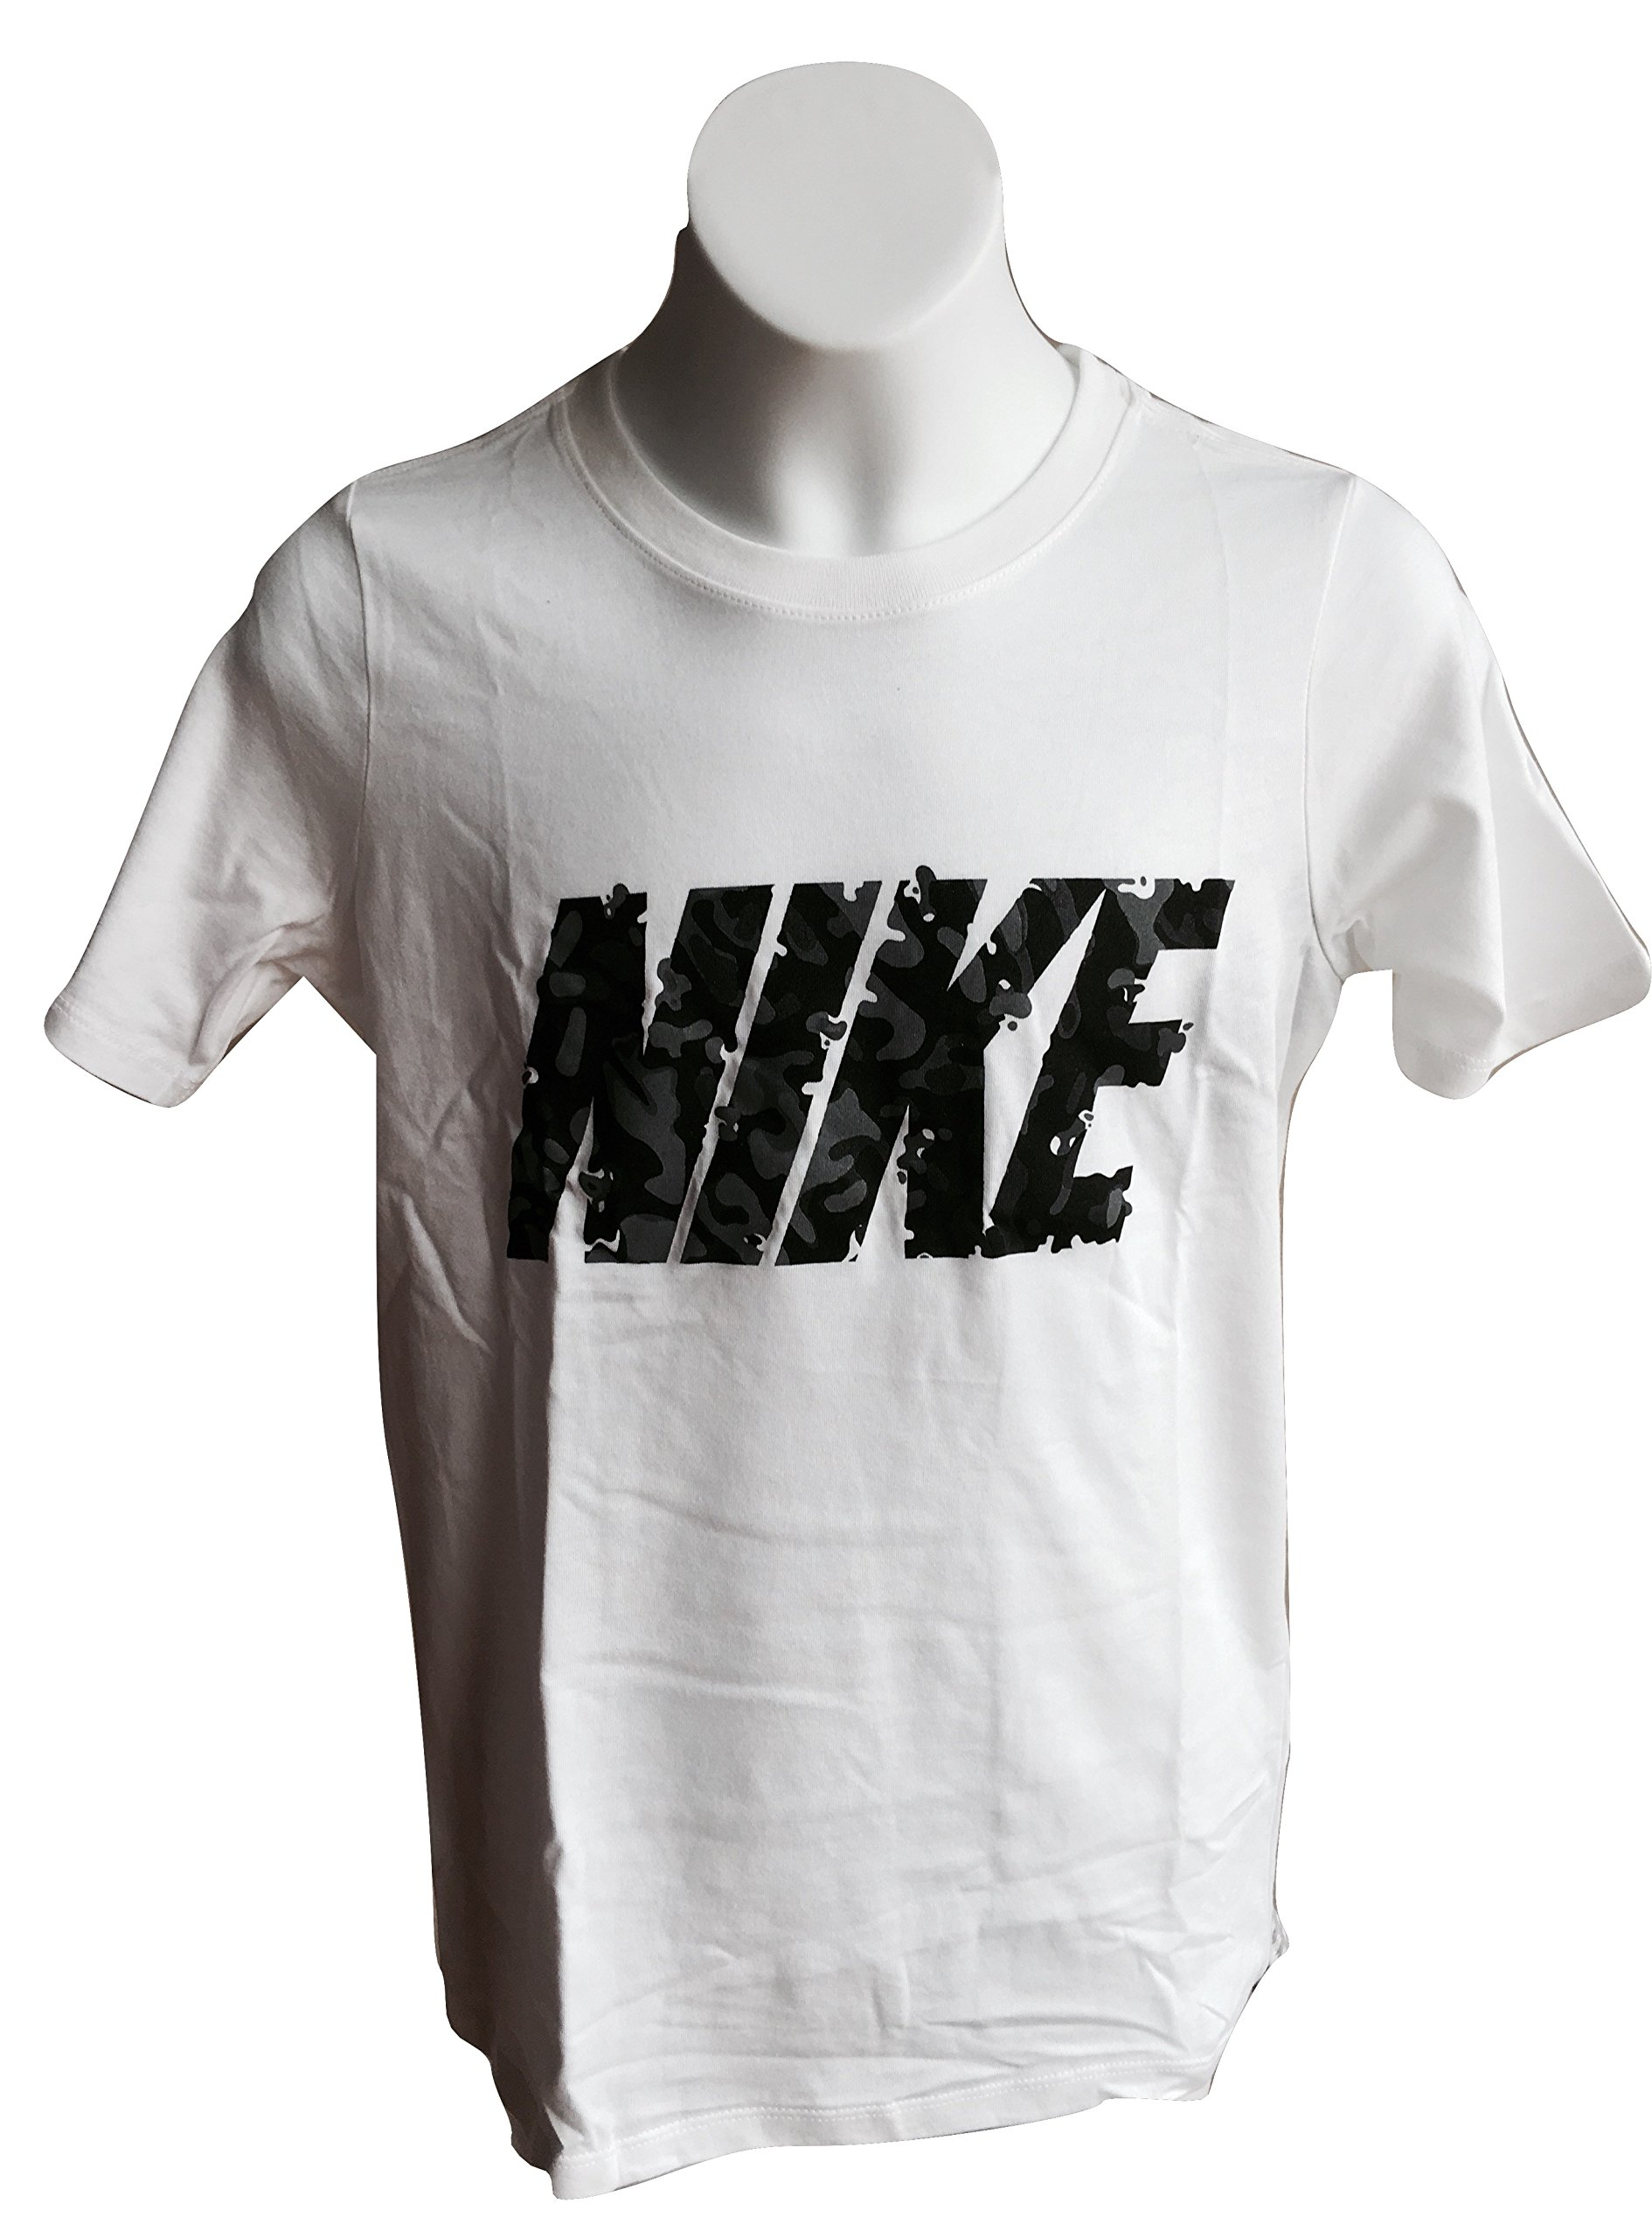 Nike Boy's Graphic Tee Shirt Red Crewneck T-Shirt 902422-100 White